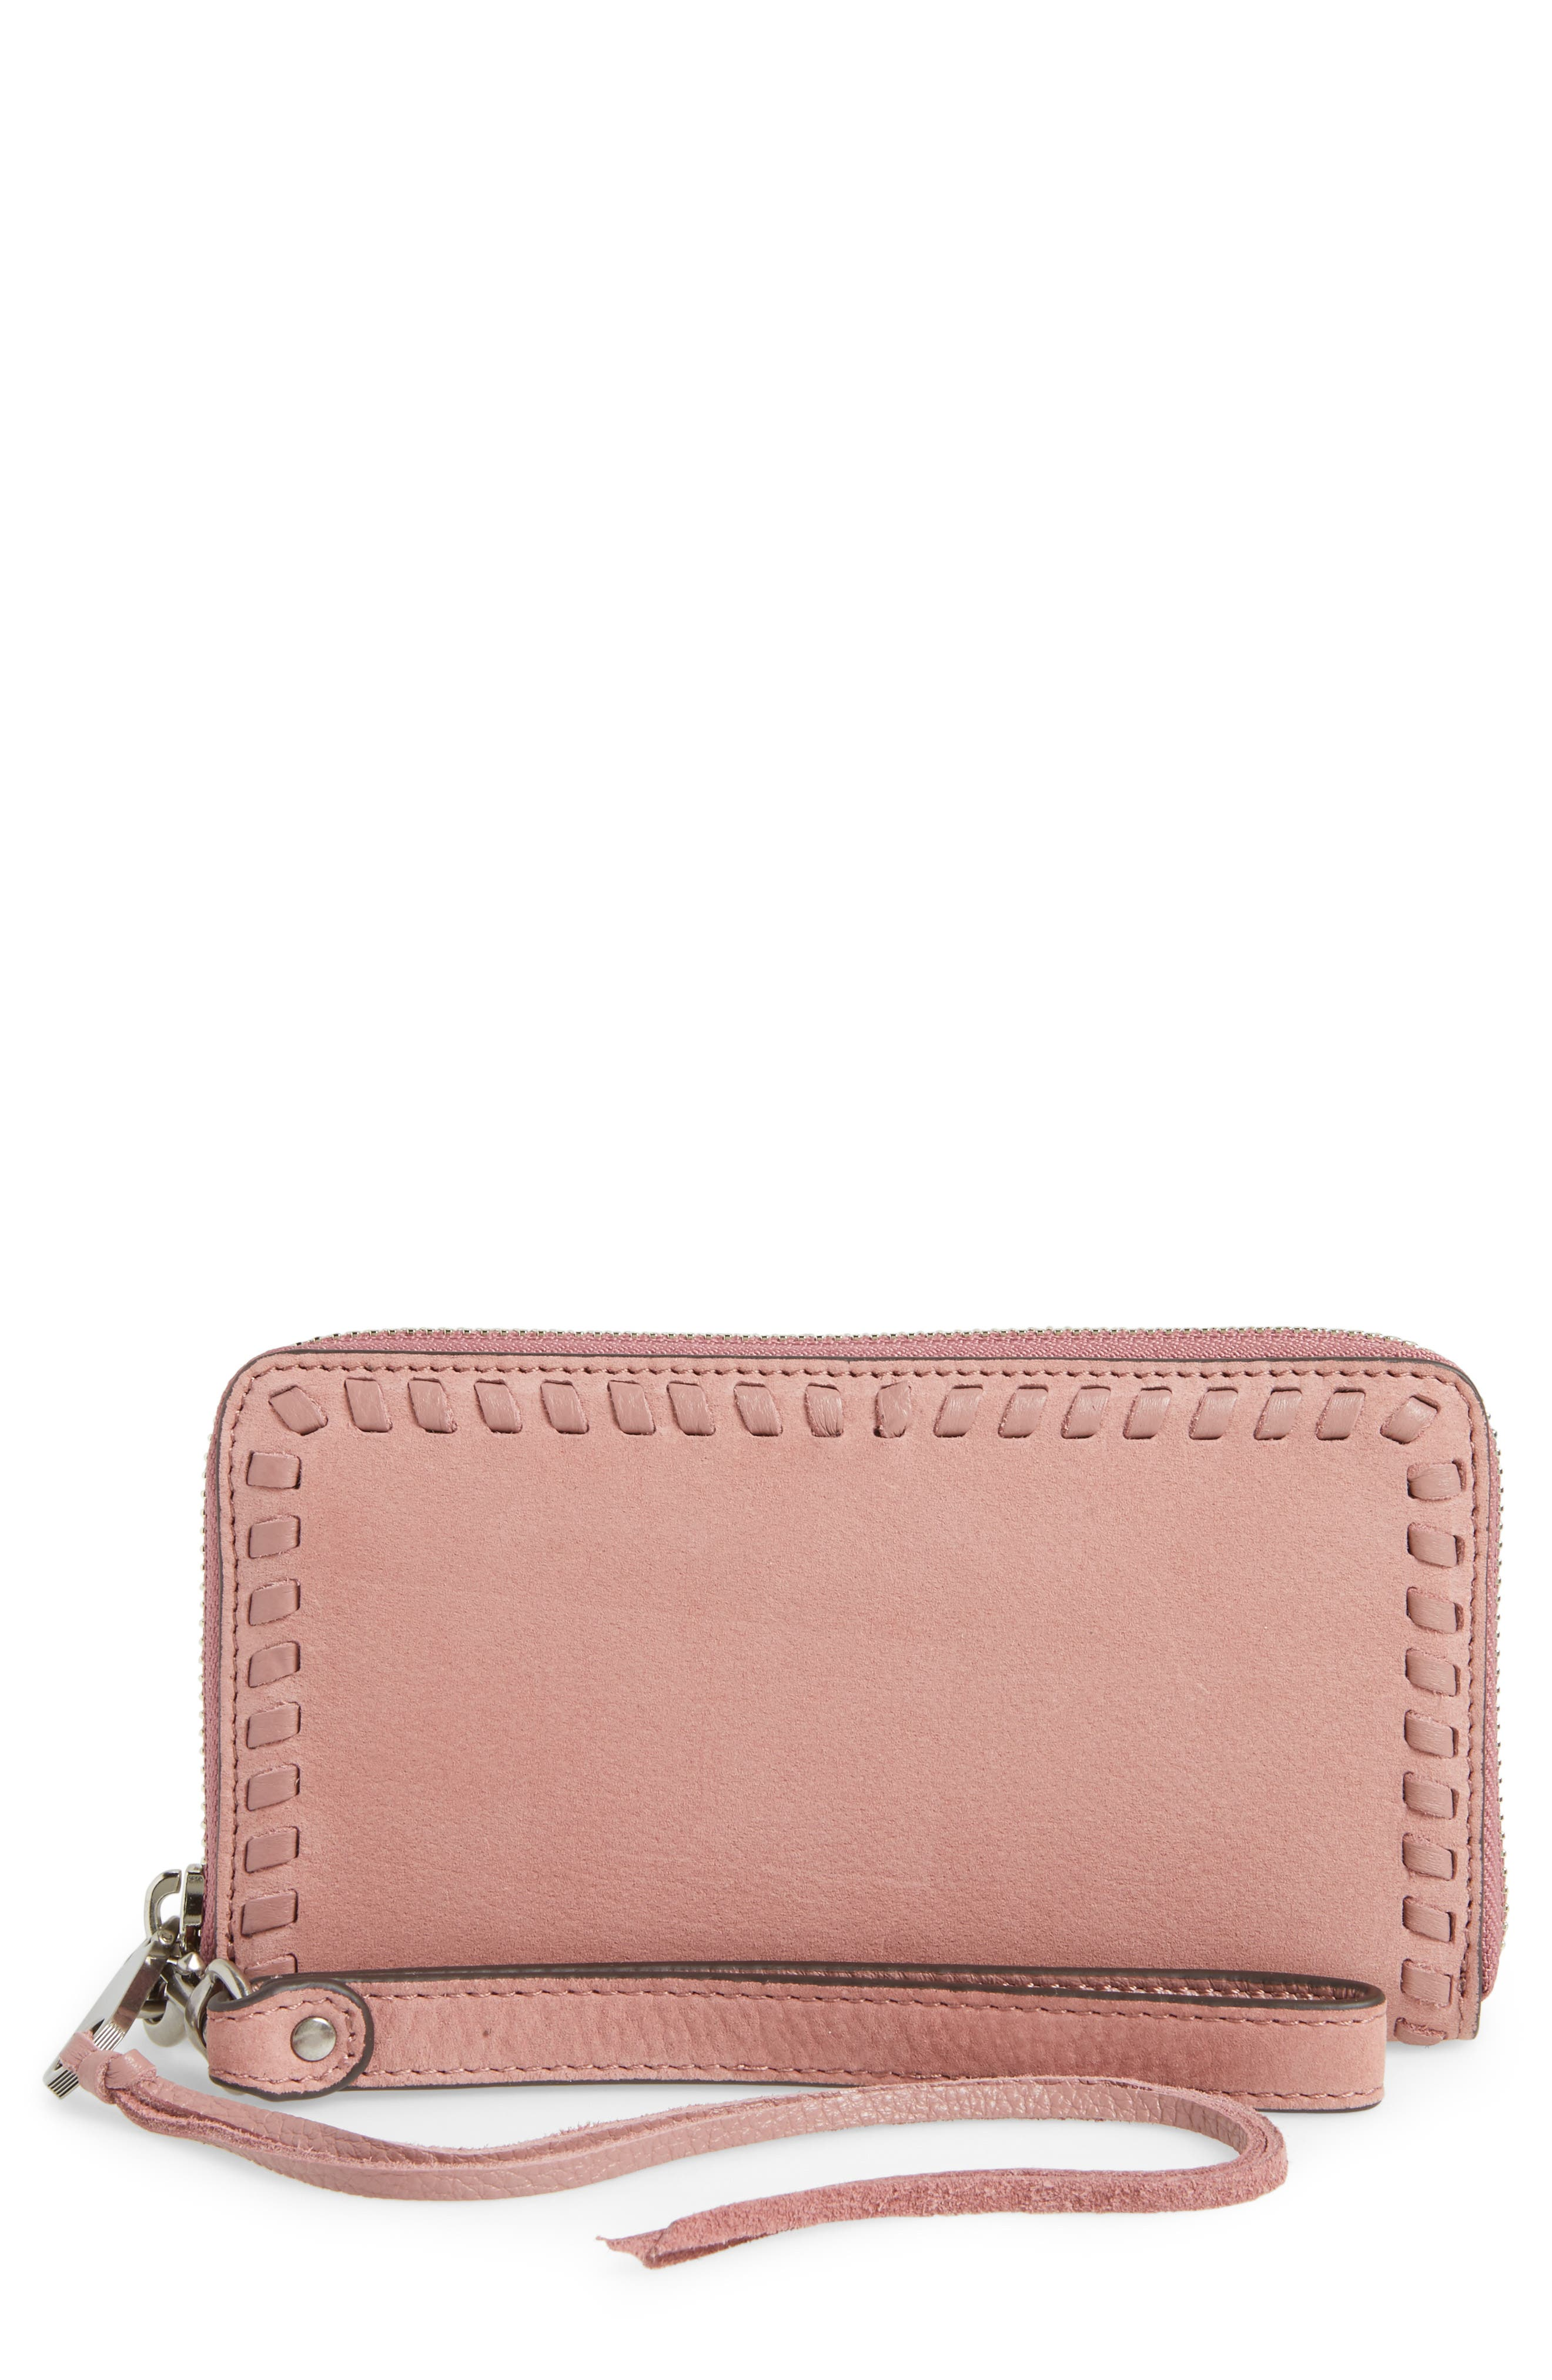 Rebecca Minkoff Vanity Leather Phone Wallet